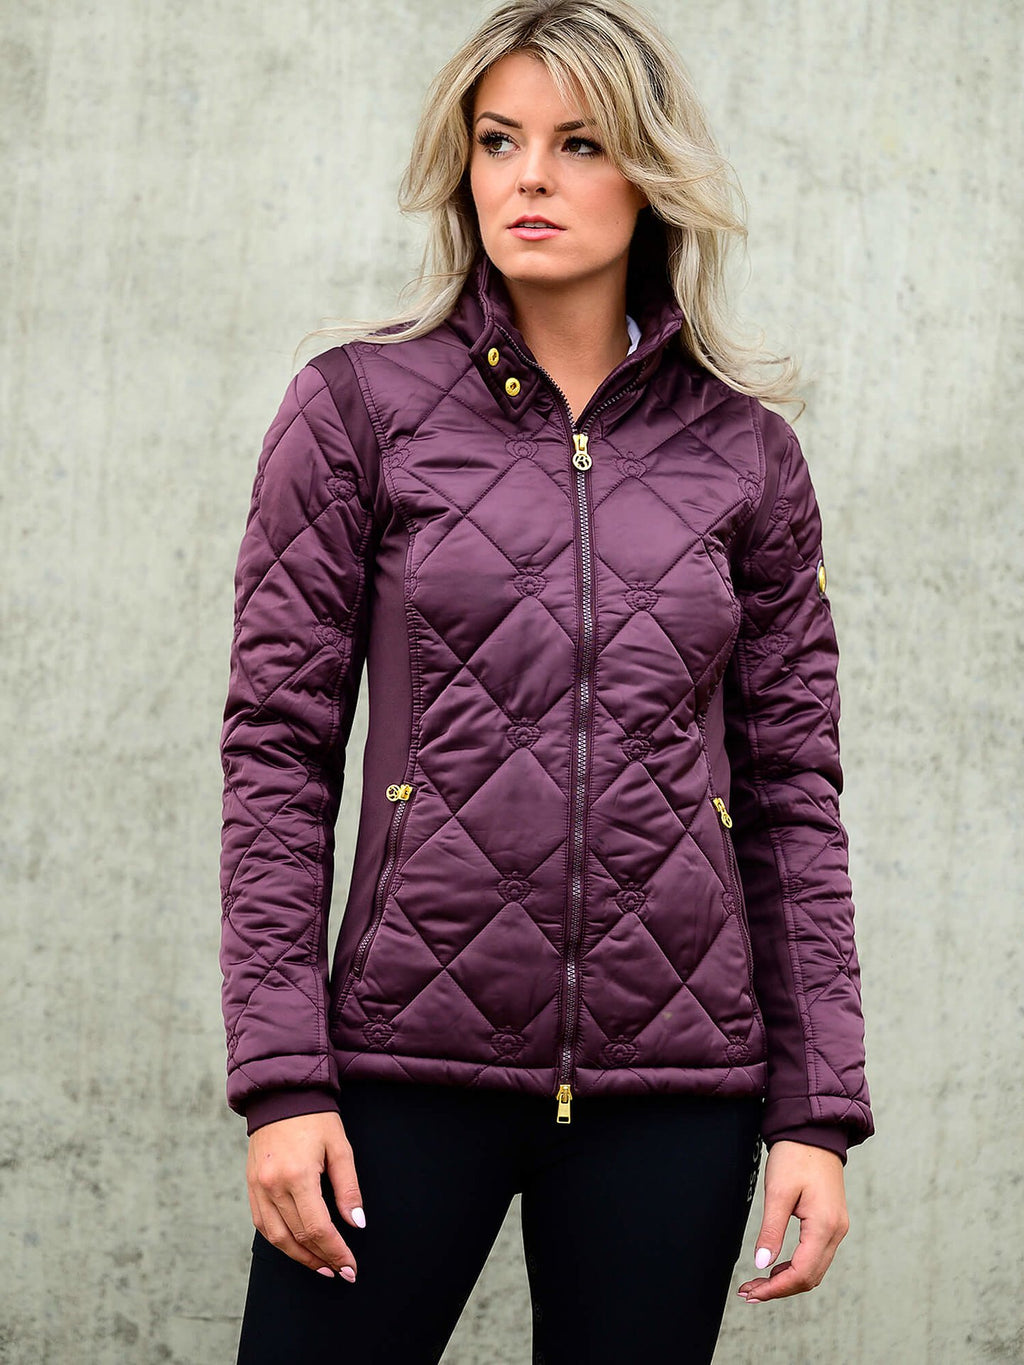 PS of Sweden Gina Jacket - Wine - The Dressage Store